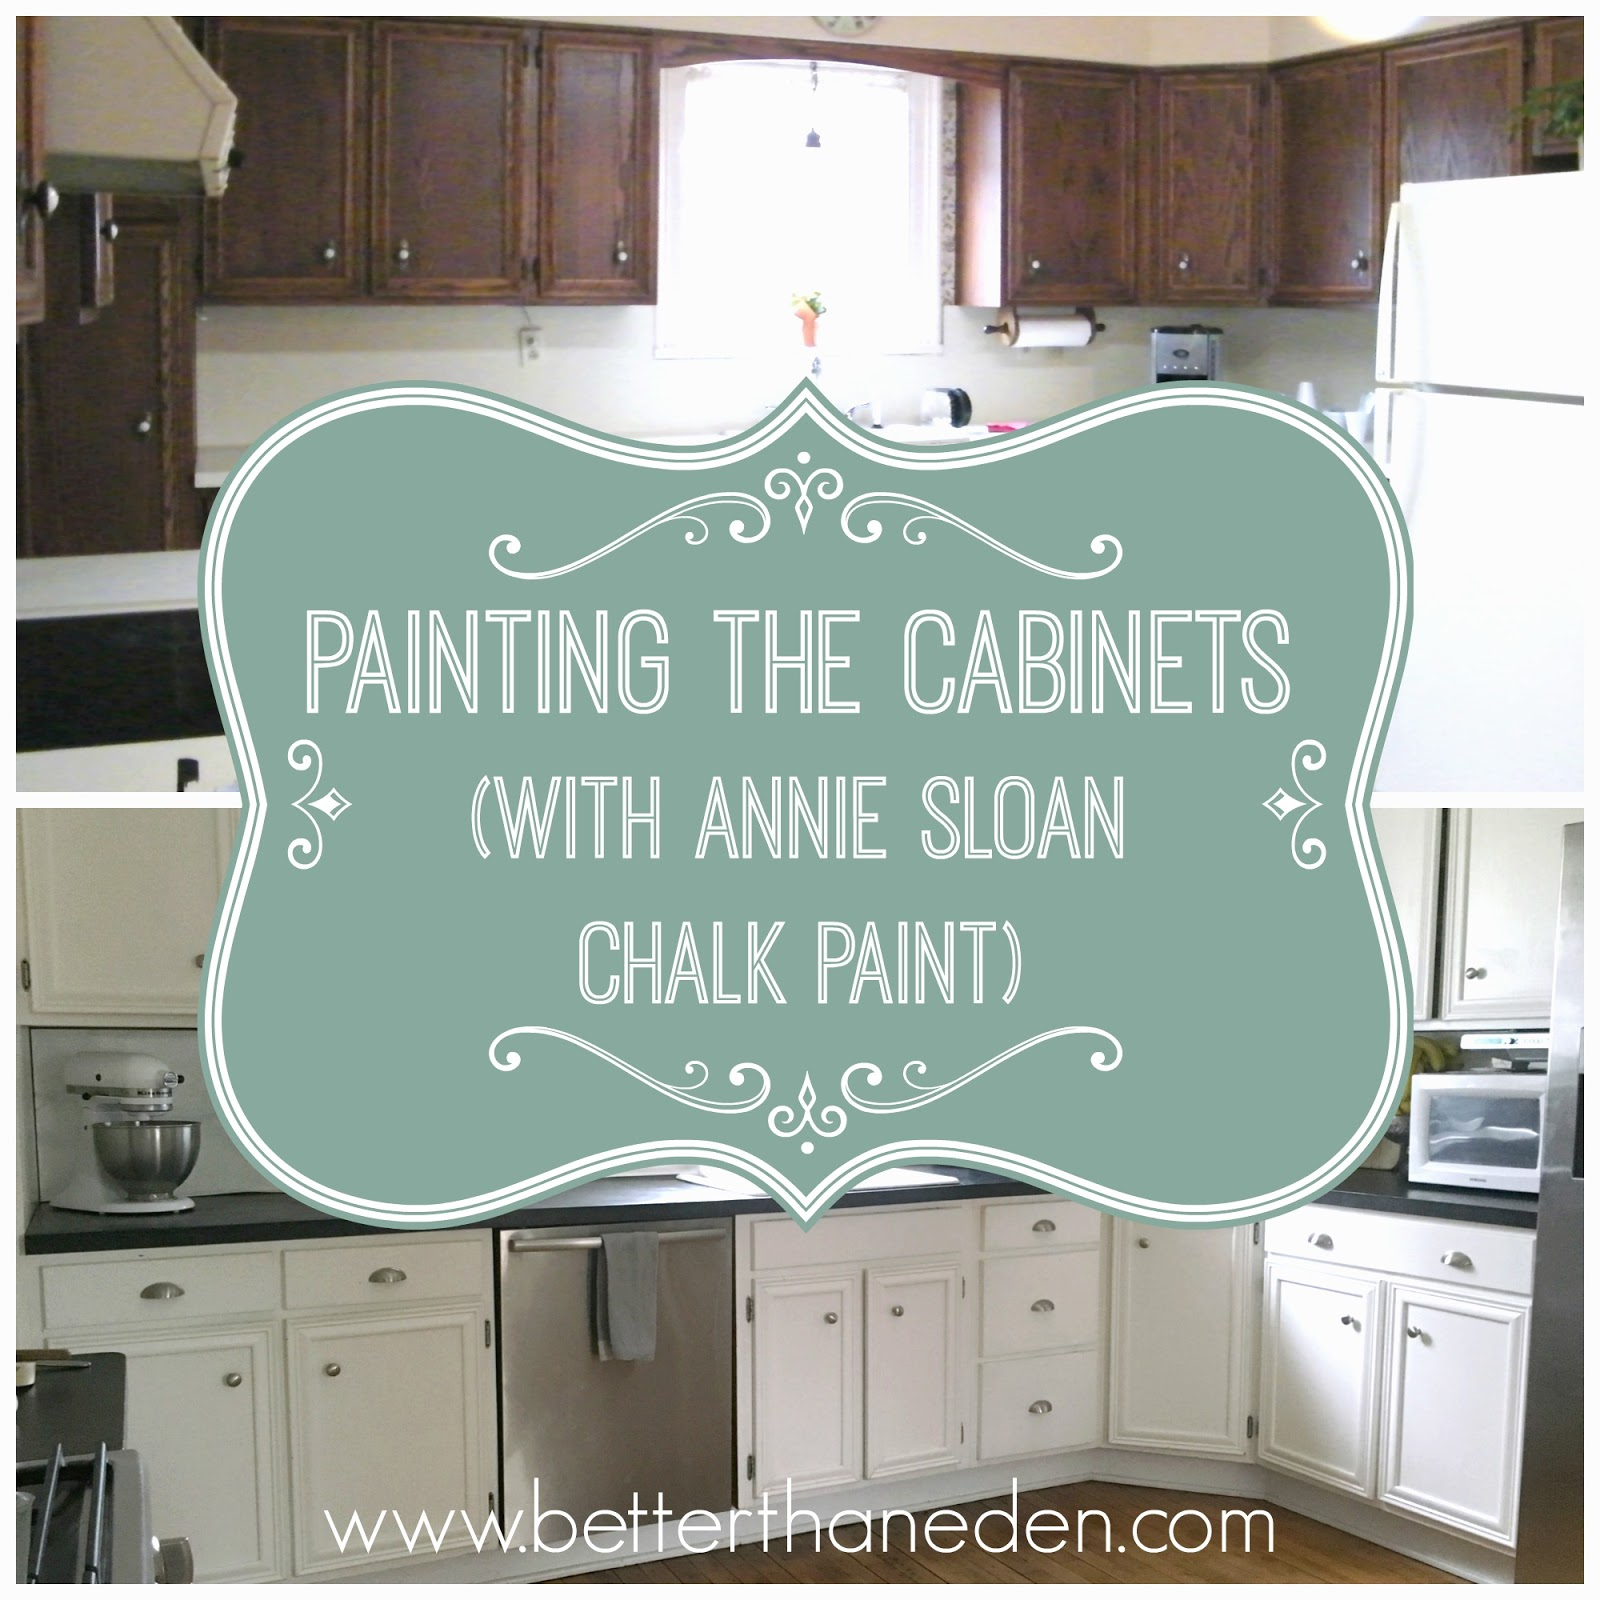 Chalk Paint On Kitchen Cabinets: Painting The Cabinets And My Annie